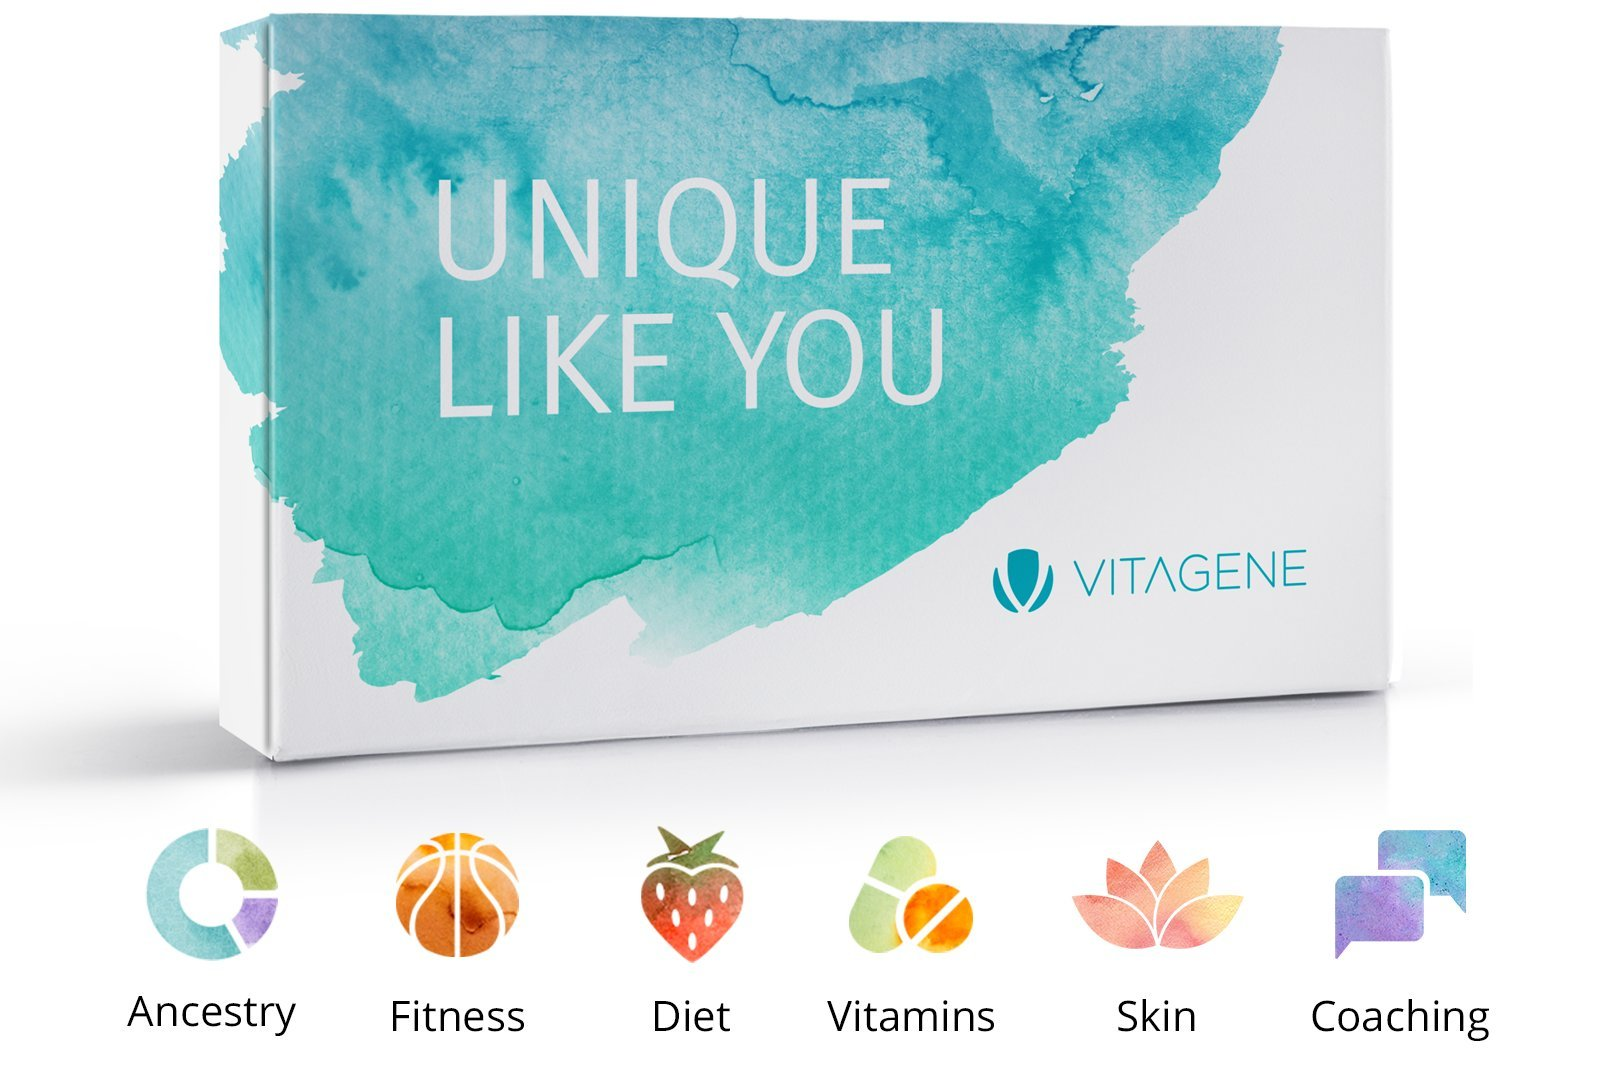 Vitagene DNA Test Kit: Health + Skin and Beauty + Ancestry Personal Genetic Reports + Nutritional Coaching